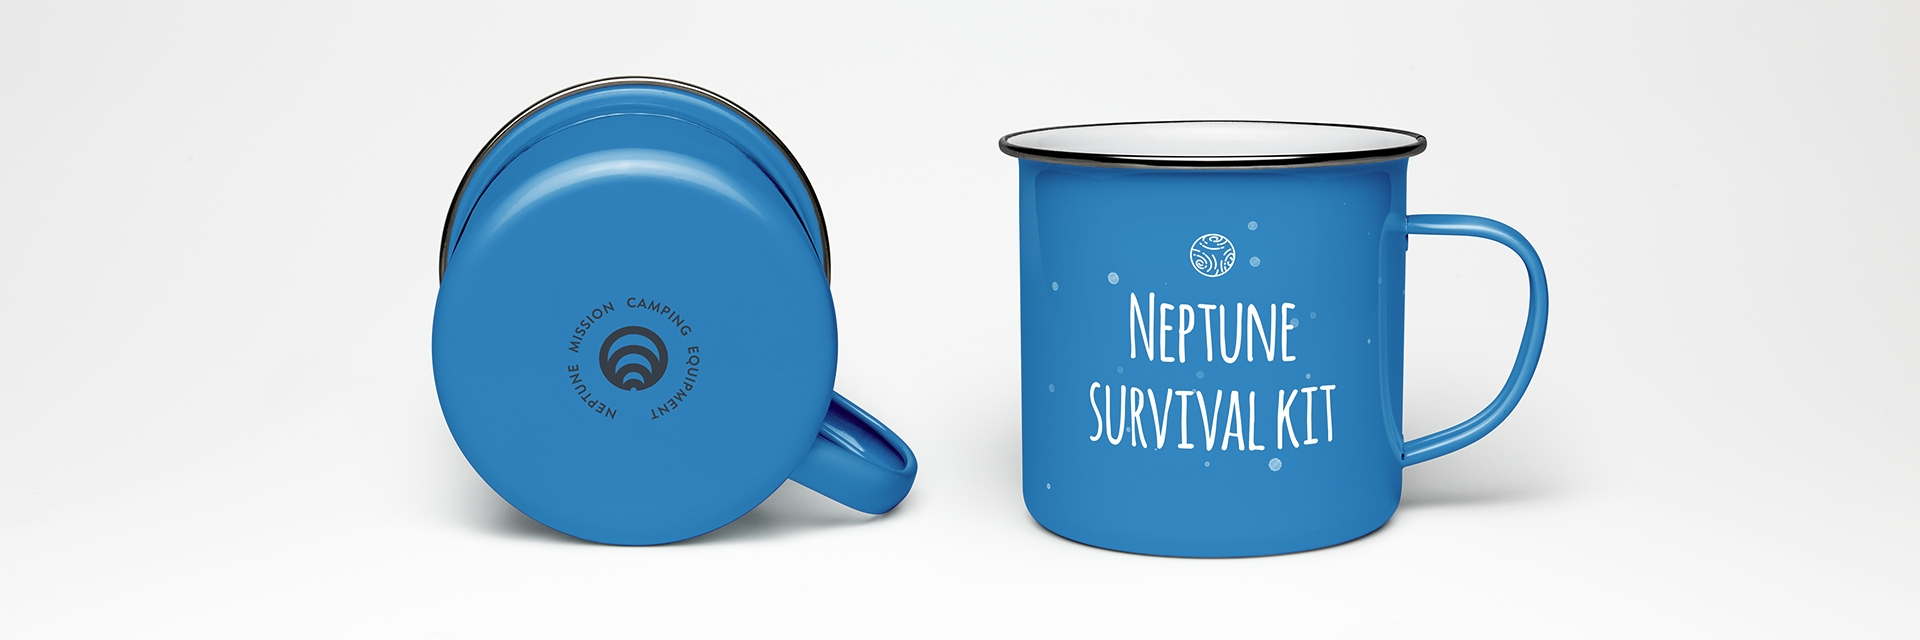 https://media.authentic-studio.com/web-content/uploads/2020/11/mobile-application-merchandise-neptune.jpg